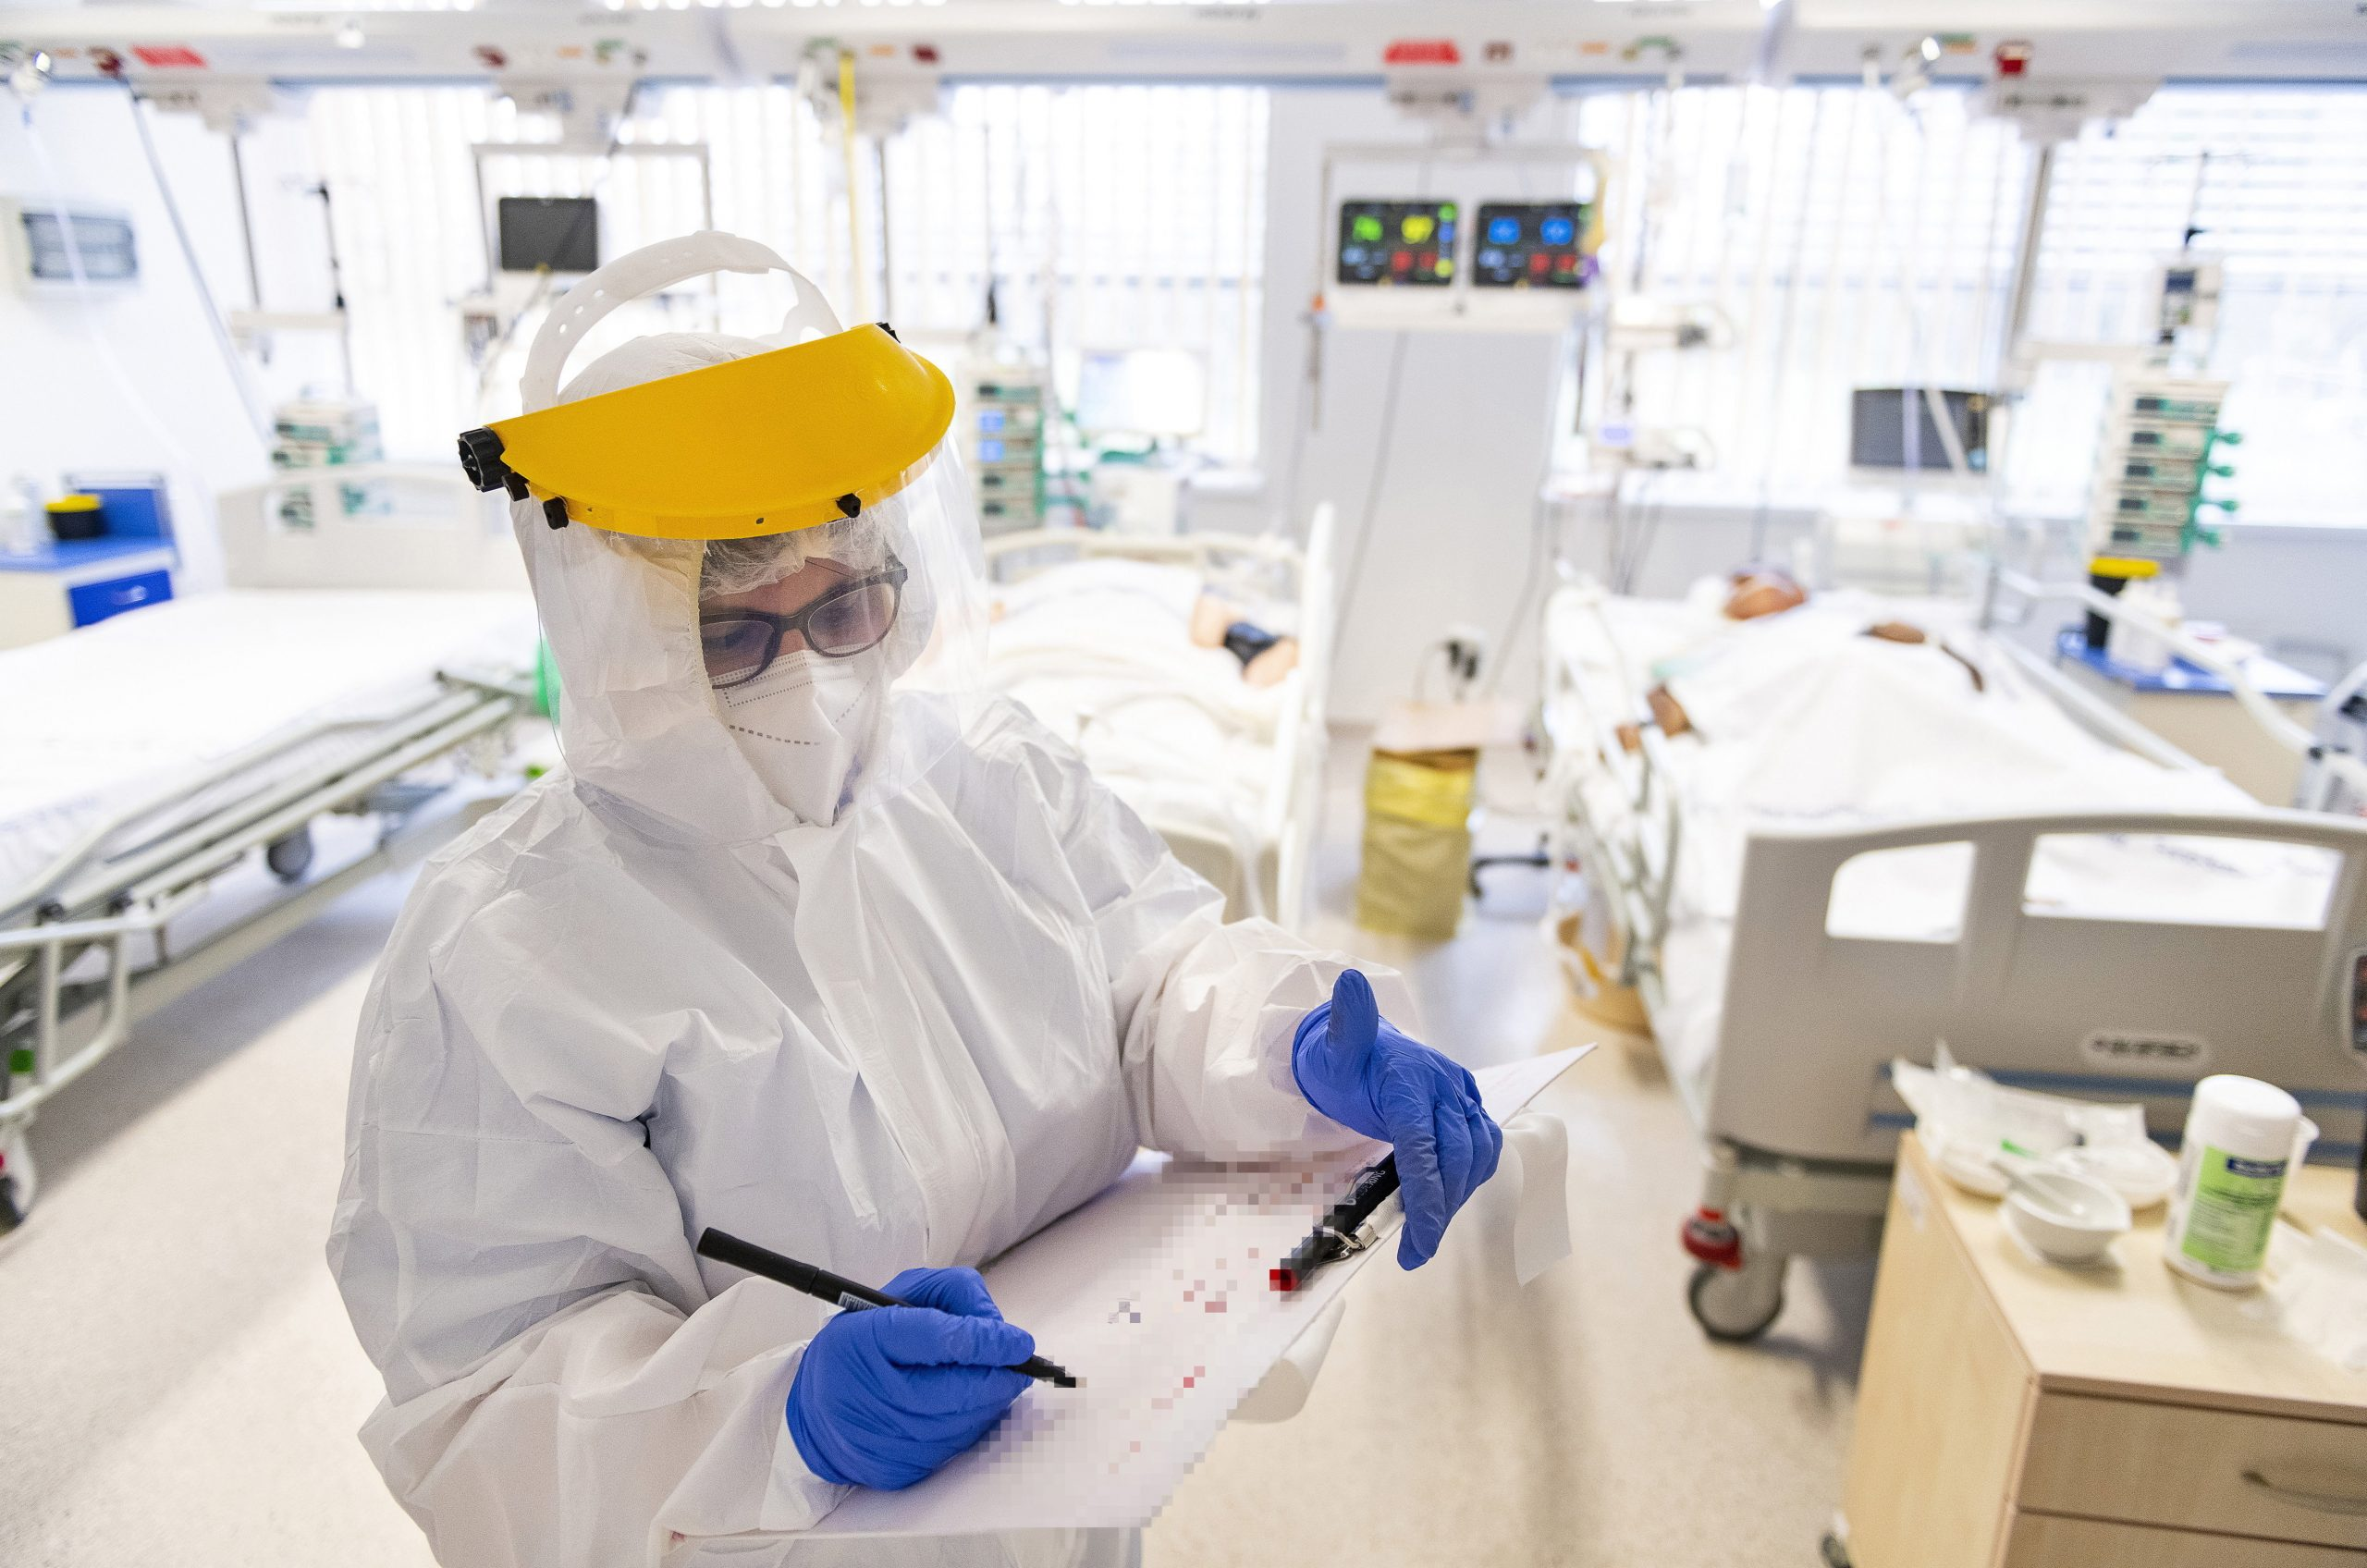 Coronavirus in April: From the Darkest Days of the Pandemic to Reopening Step-by-step